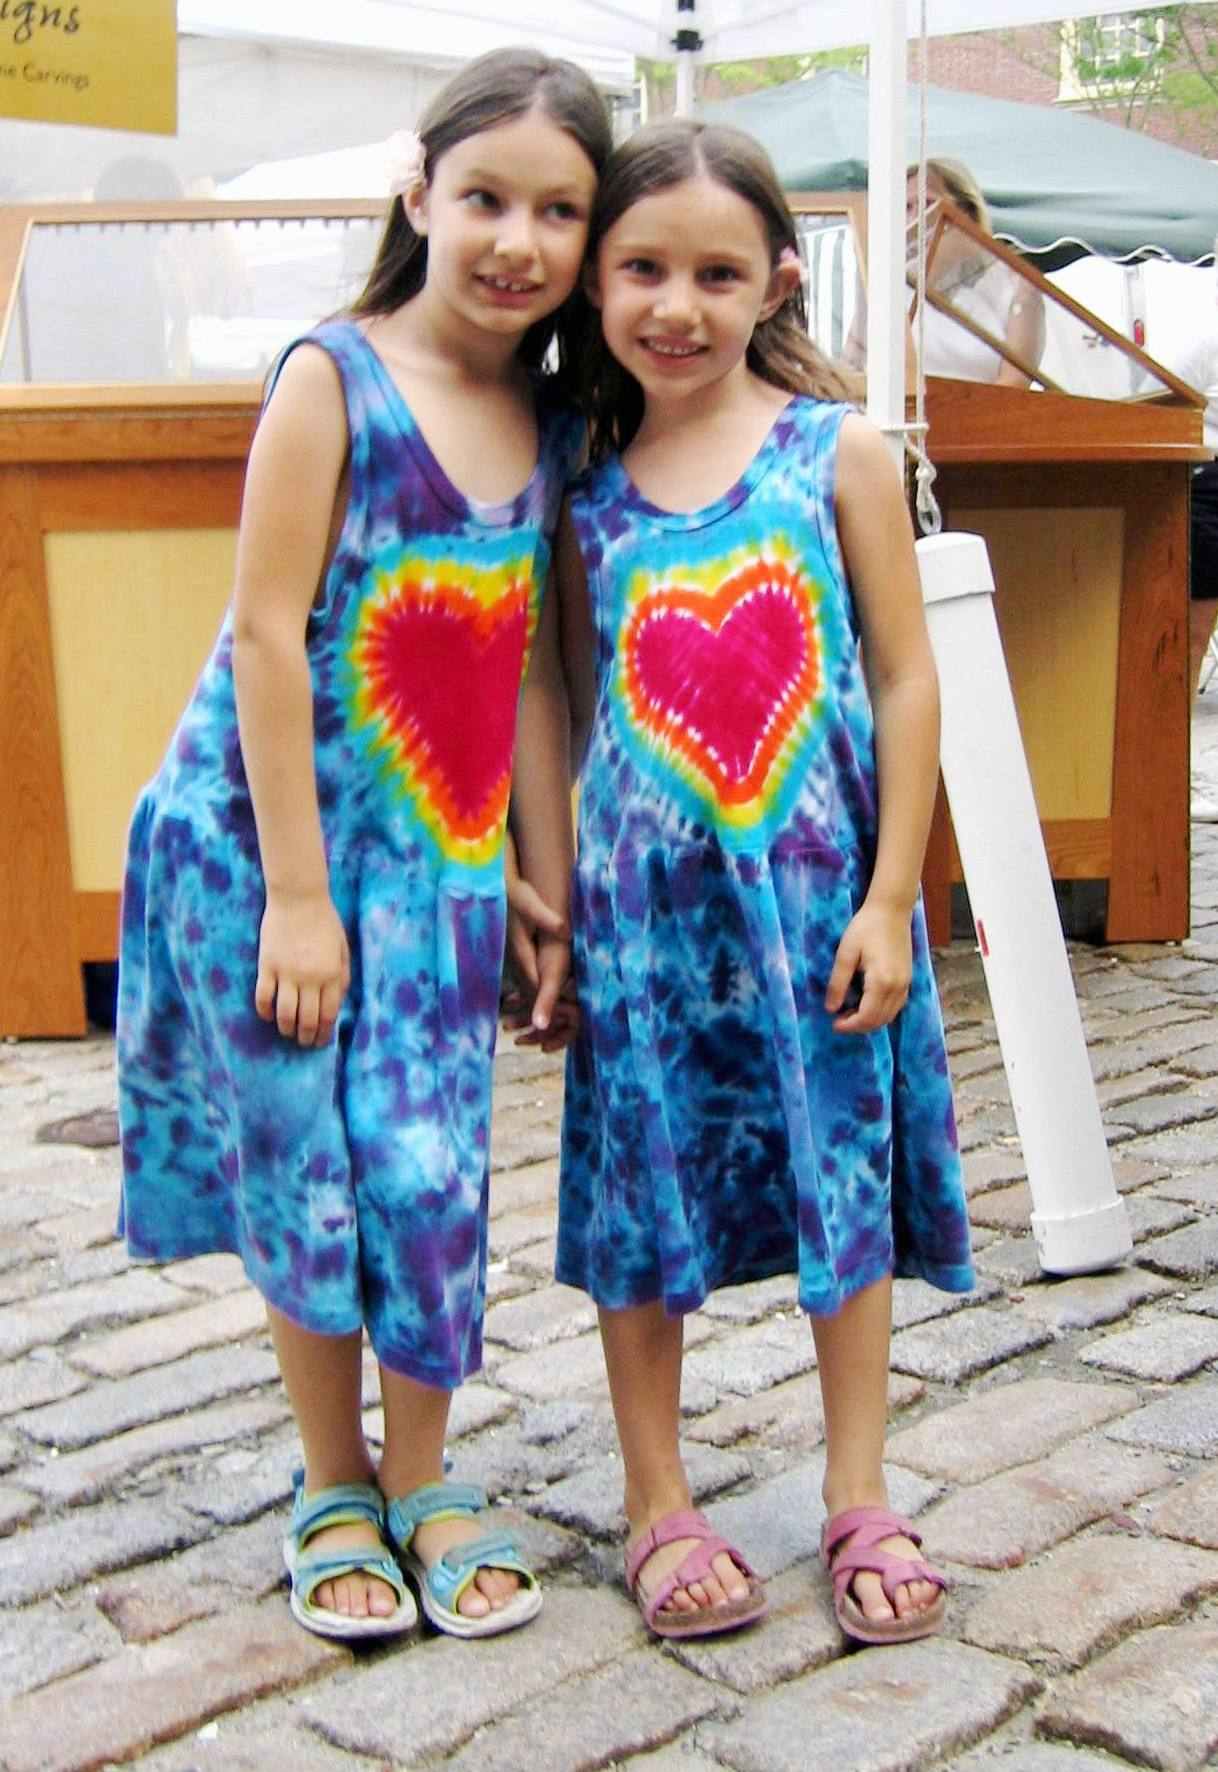 Kelsey and Michaela at New Bedford Summerfest 2006